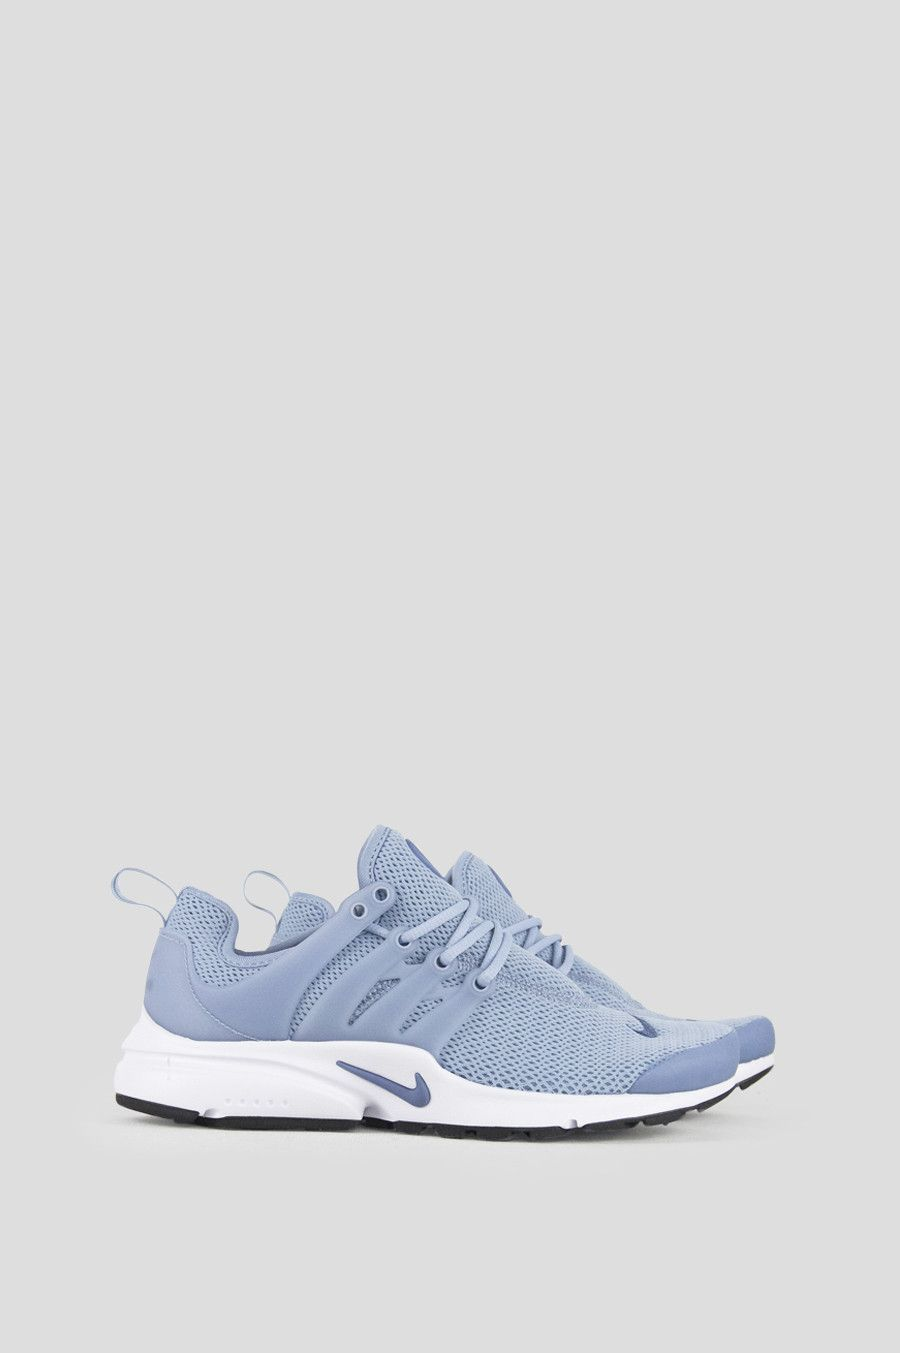 The Nike Air Presto Women s Shoe is inspired by the comfort and minimalism  of a classic T-shirt for lightweight everyday comfort. - Product Code   878068-400 ... d270e2d27e8a